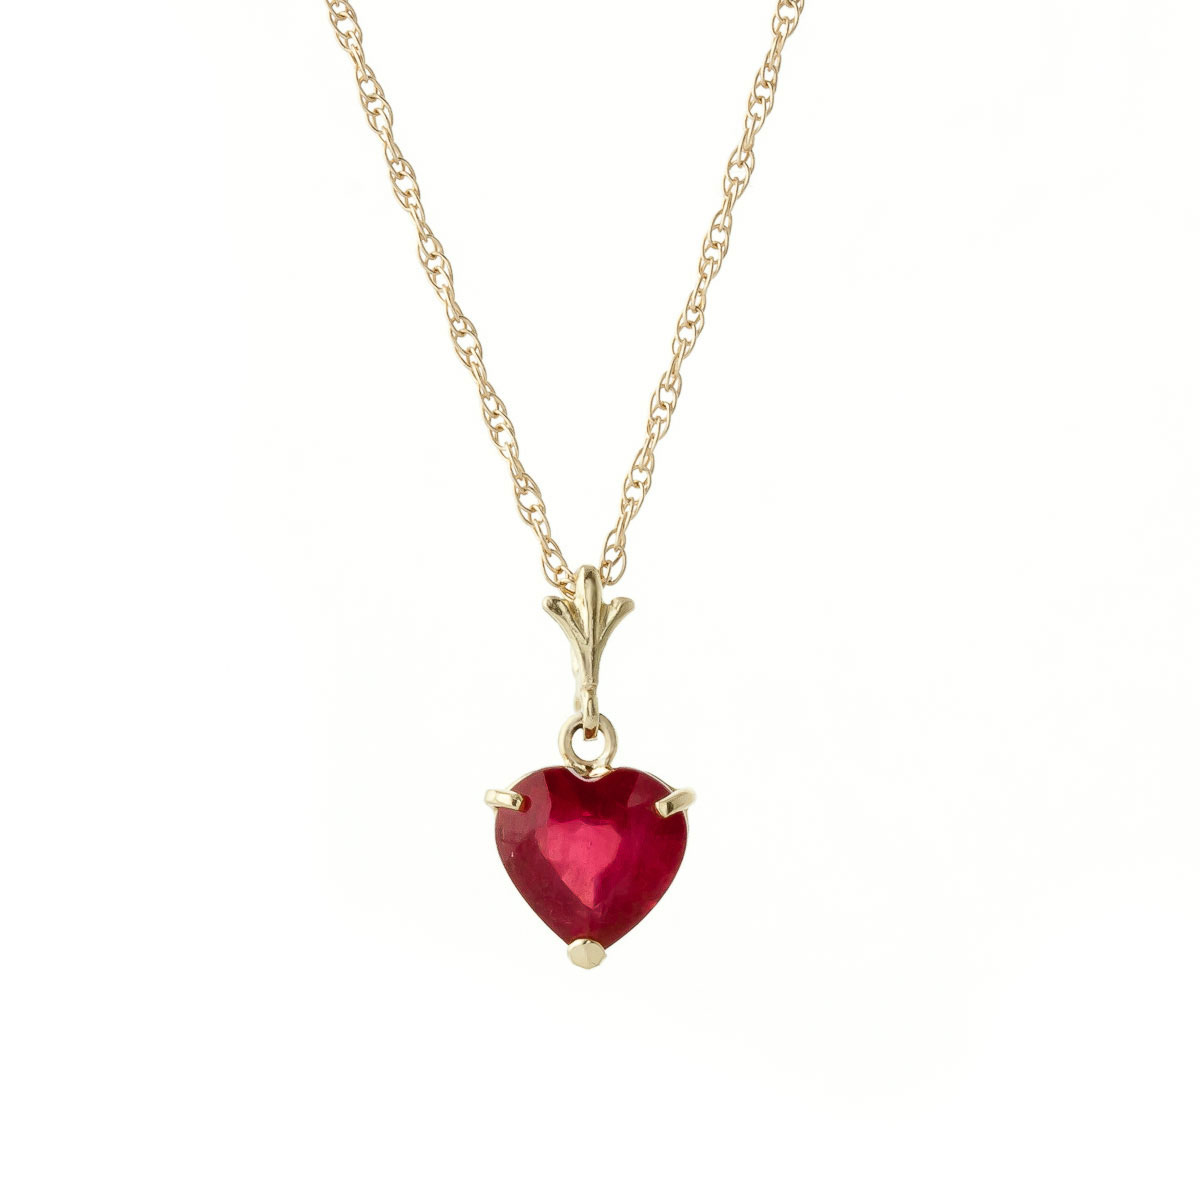 Bargain Ruby Heart Pendant Necklace 1.45ct in 9ct Gold Stockists